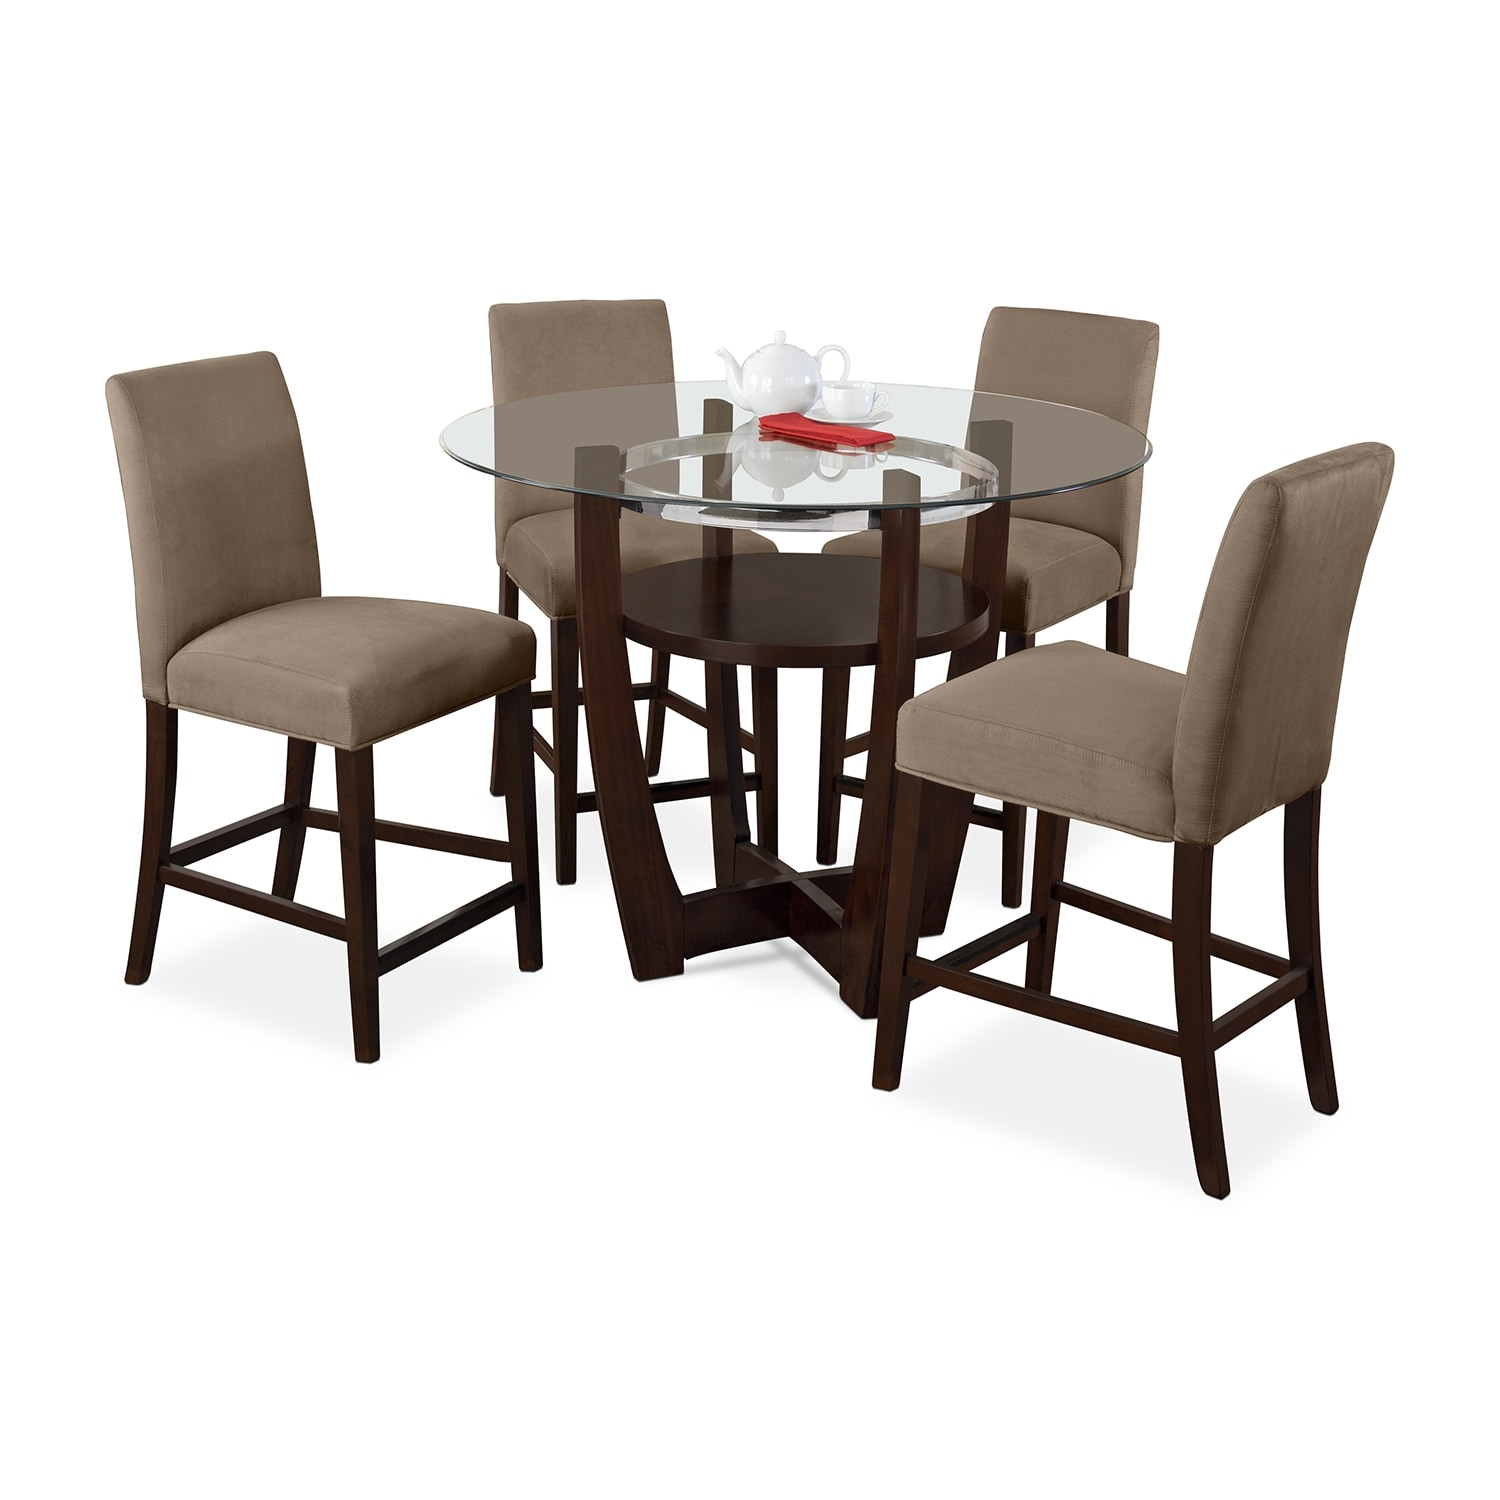 Dining Room Furniture - Alcove Counter-Height Dining Table and 4 Counter-Height Stools